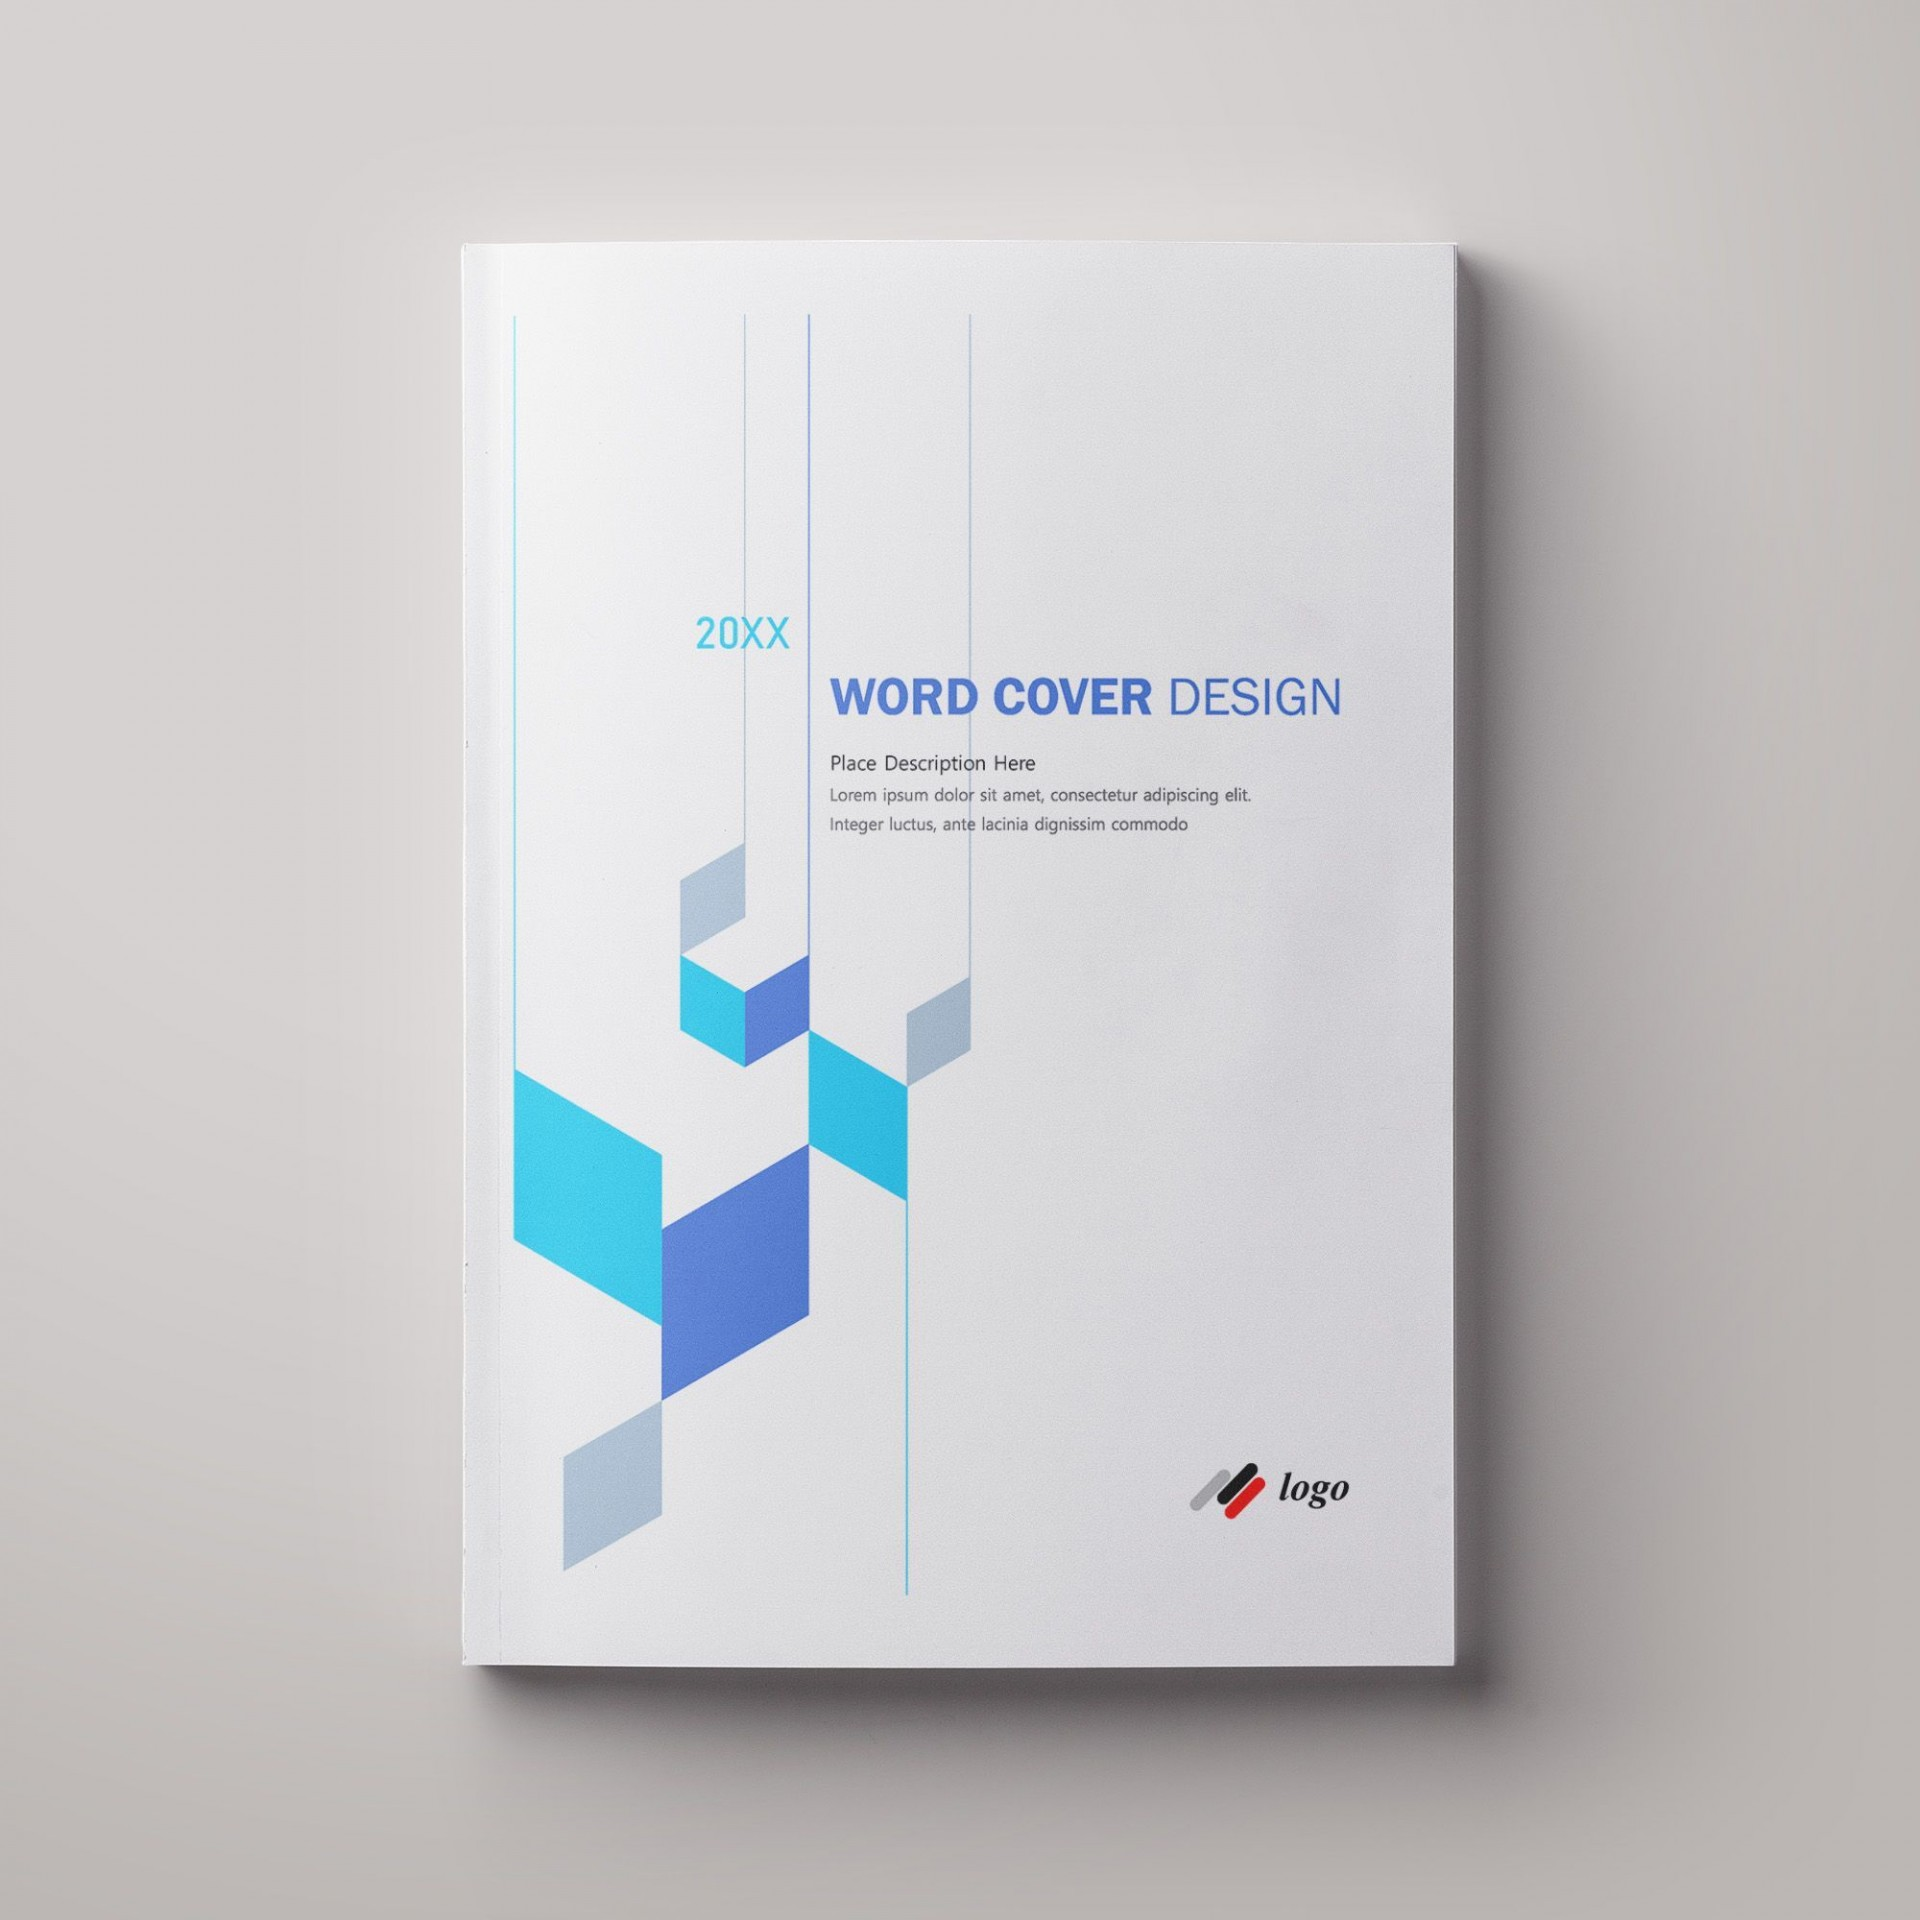 006 Fascinating M Word Page Template Free Download Highest Quality  Cover Design 2007 Book1920